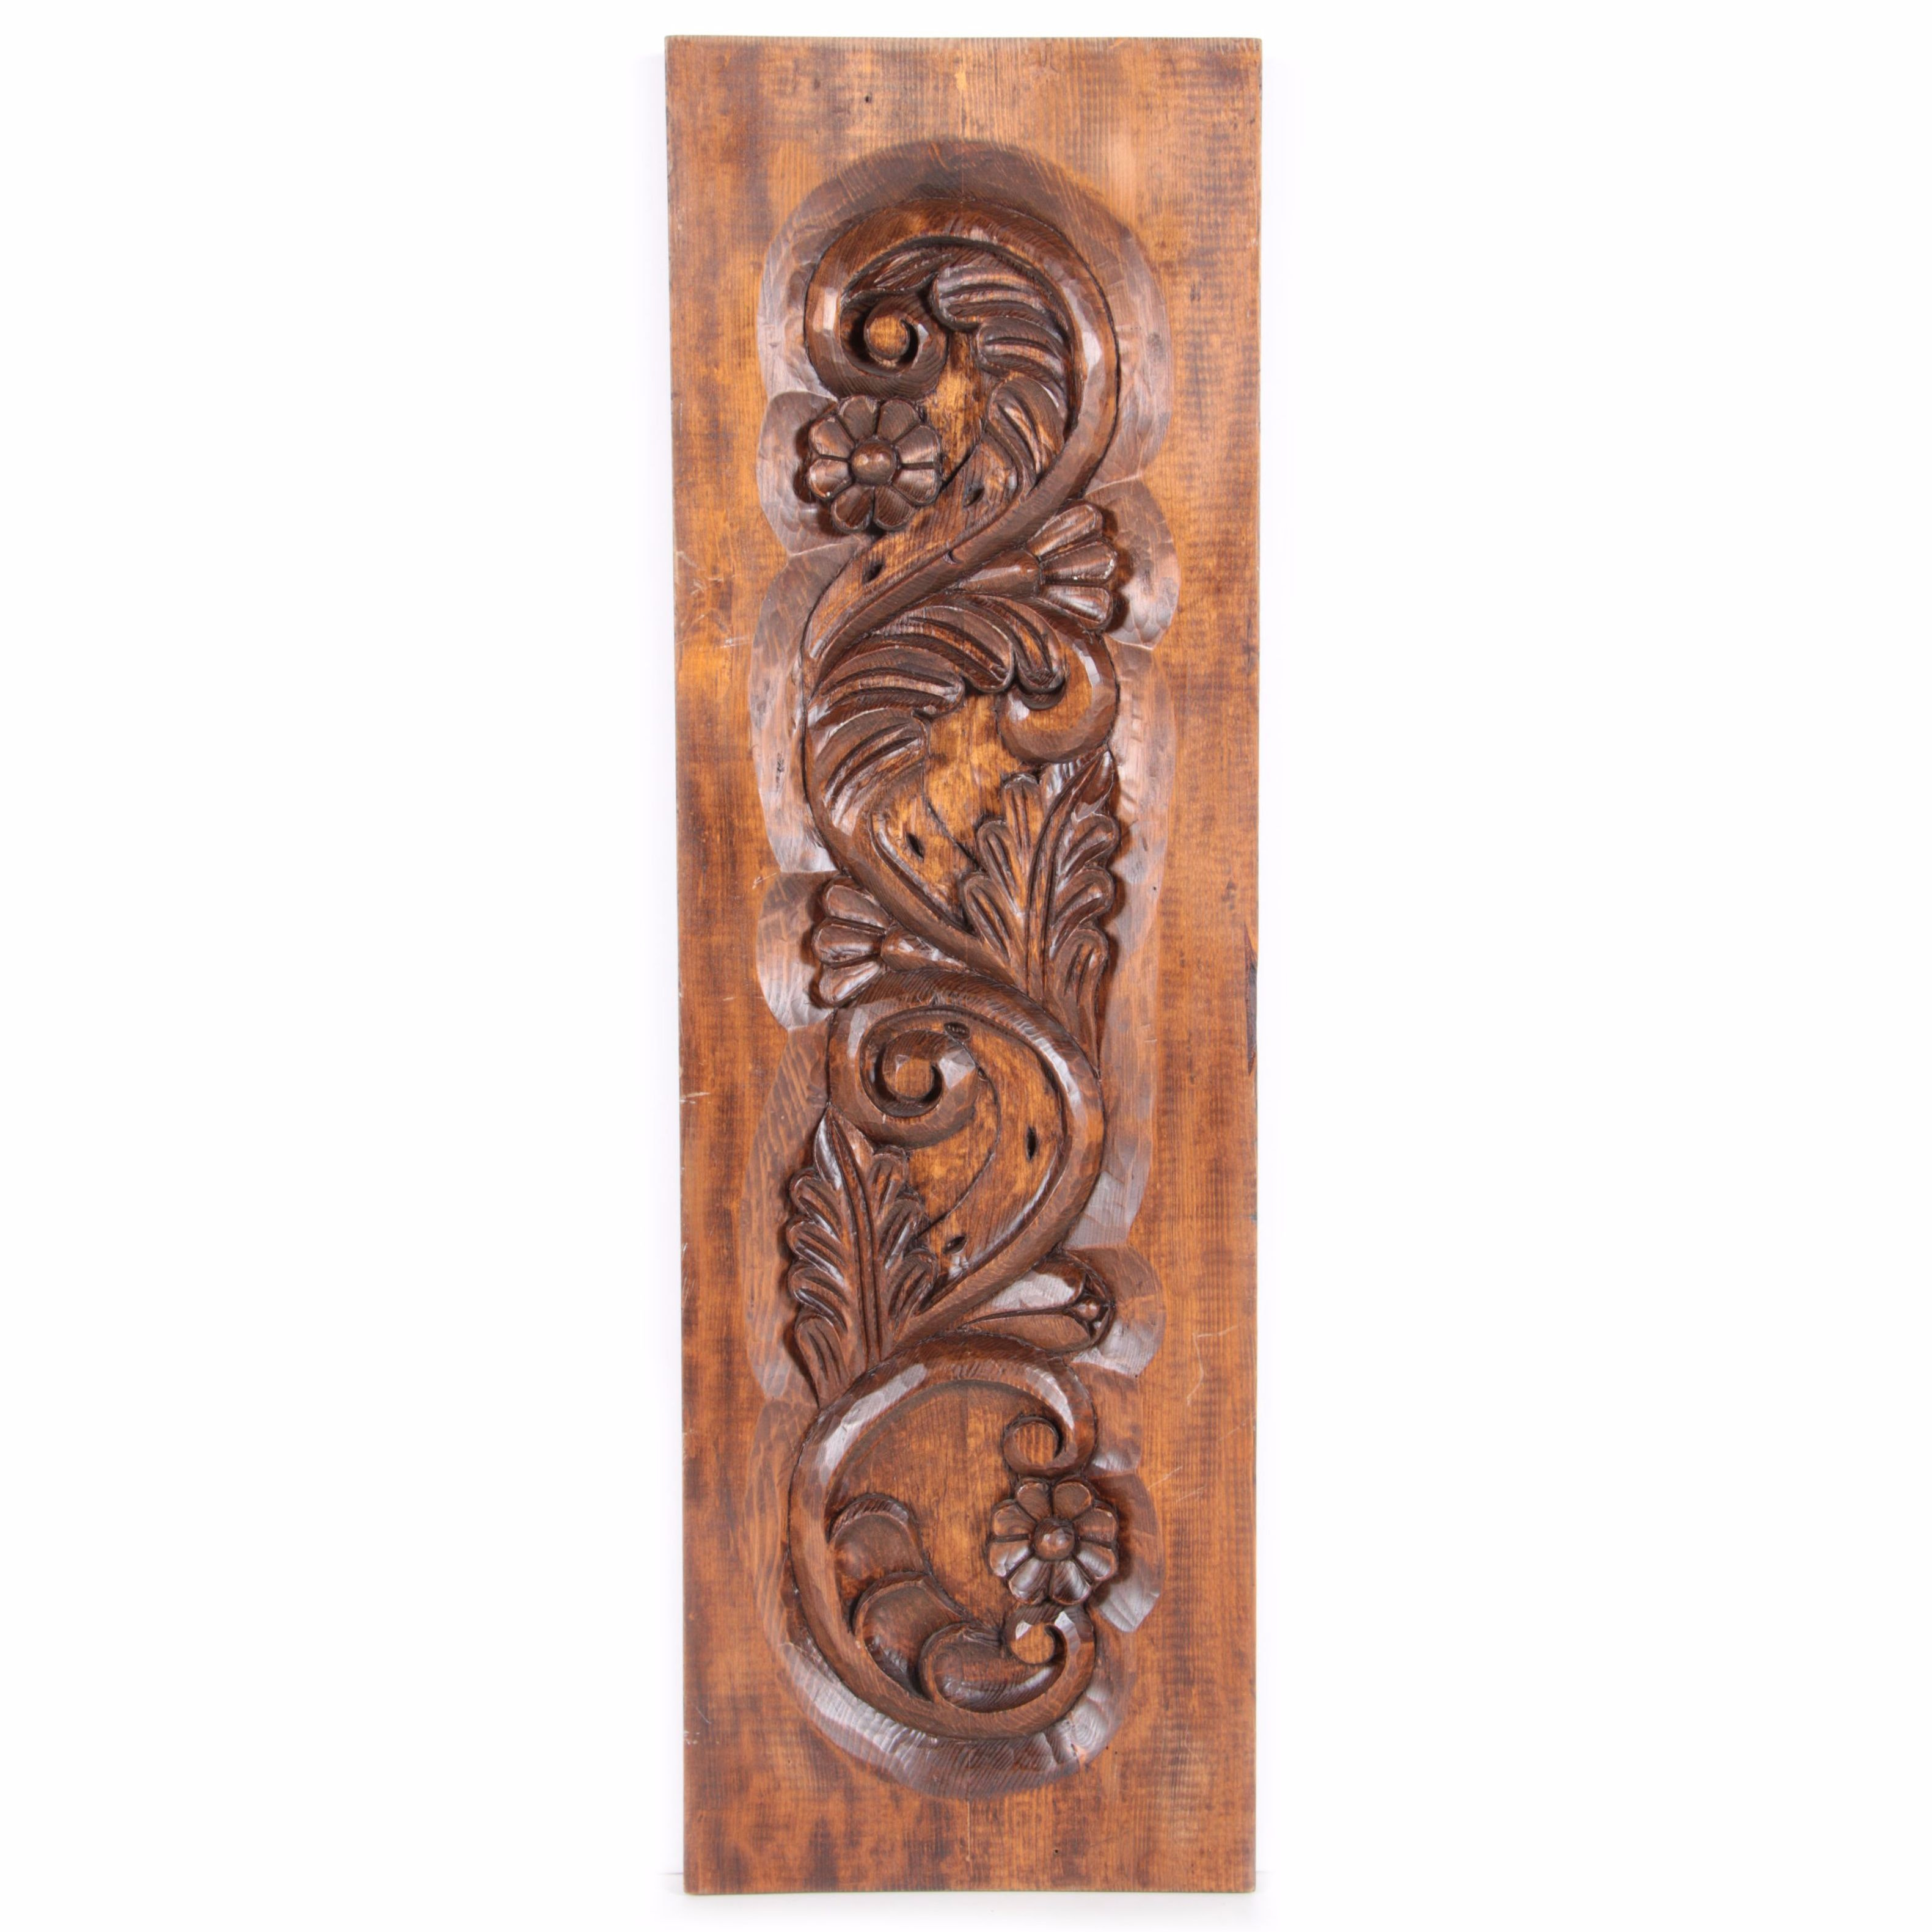 Carved Wooden Floral Wall Decor